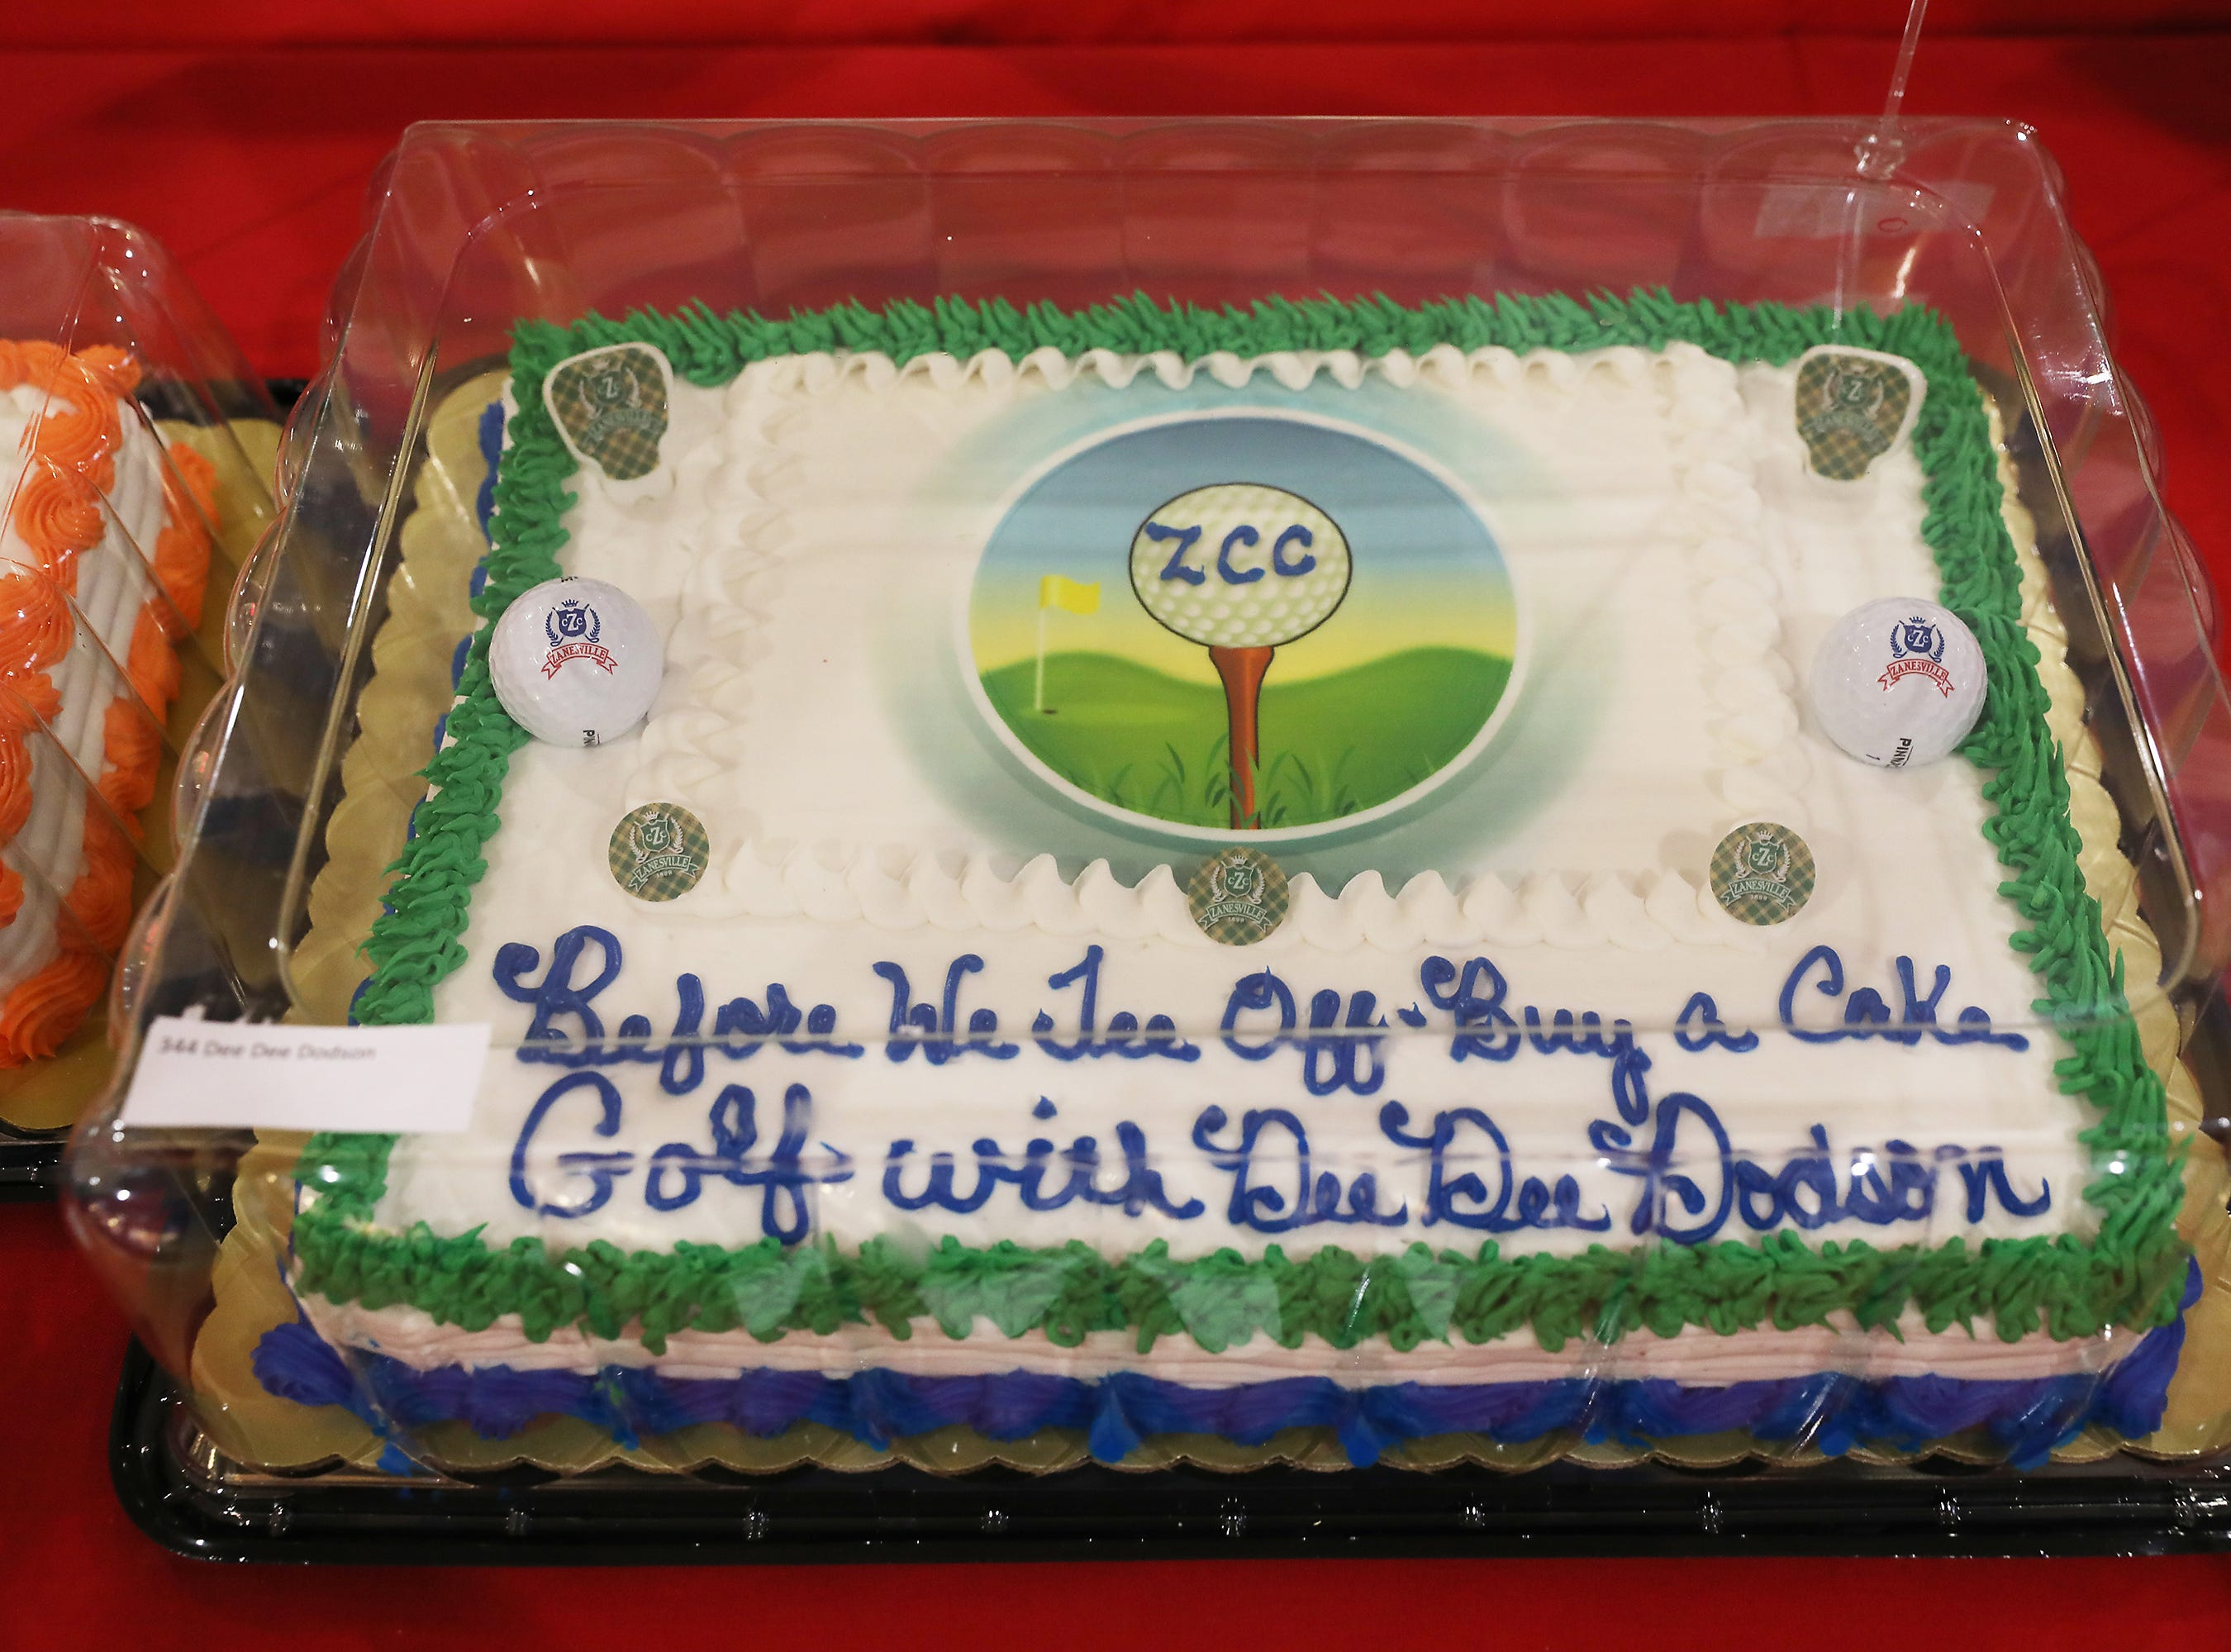 2:45 P.M. Friday cake 344 Dee Dee Dodson - 18 holes of golf at the Zanesville Country Club with Dee Dee, ZCC golf cart towel